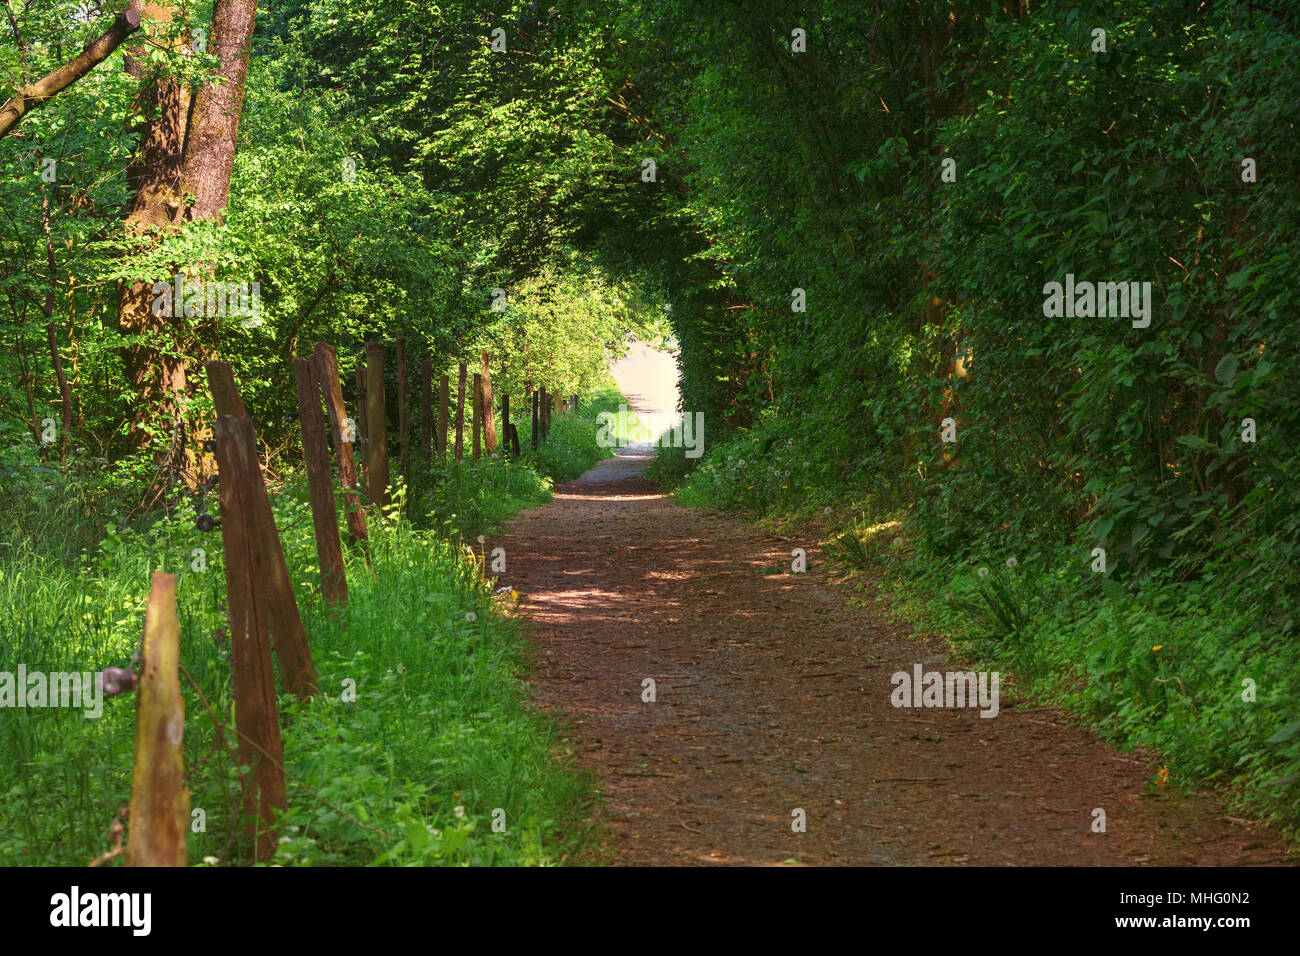 Defile, narrow trail through the forest in the town of Heiligenhaus towards' Abtskuecher pond. - Stock Image